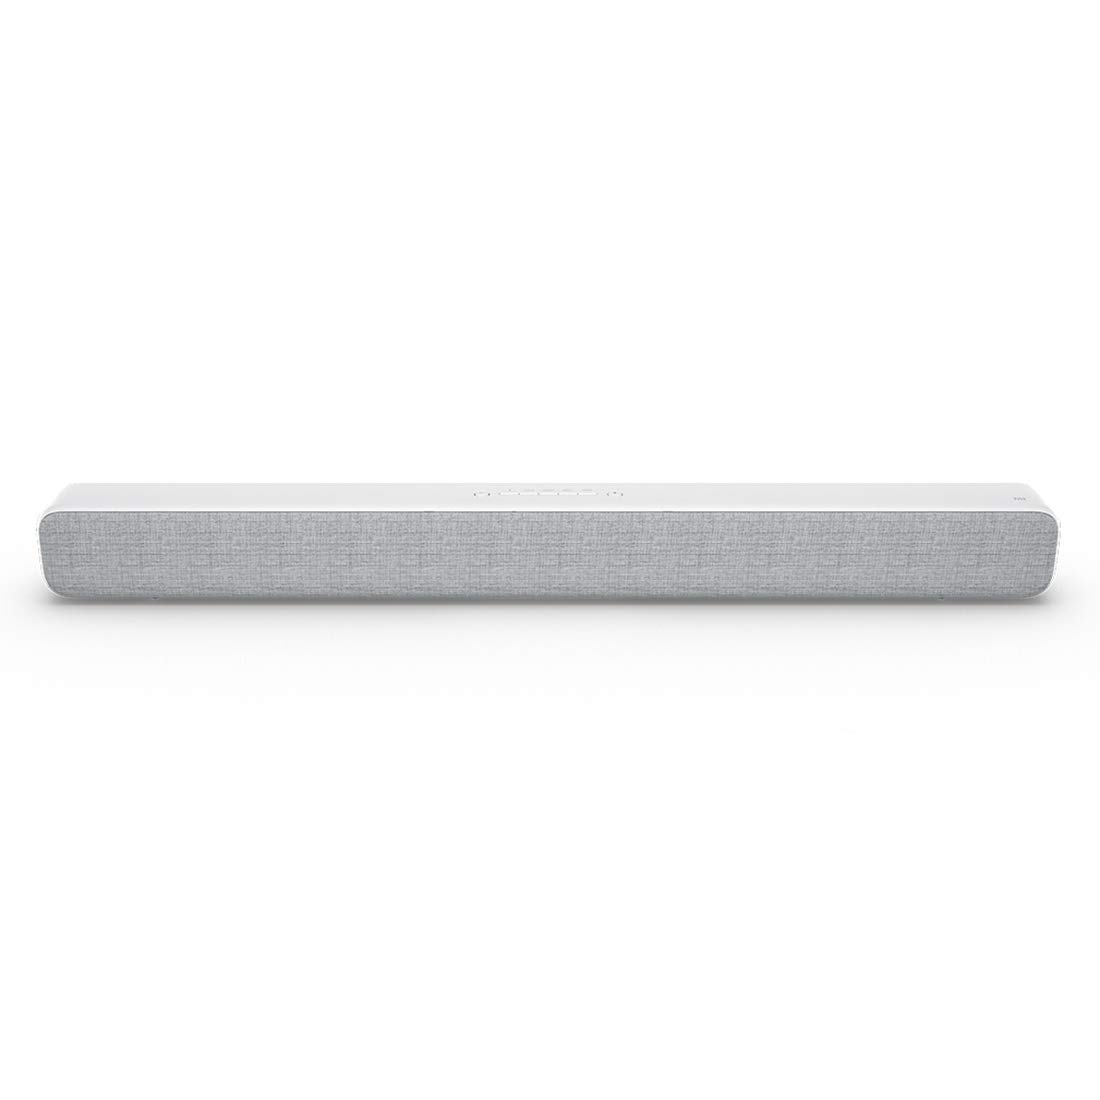 Consumer YHM Xiaomi Rectangle Cloth TV Audio Bluetooth 4.2, Support A2DP Music Playback